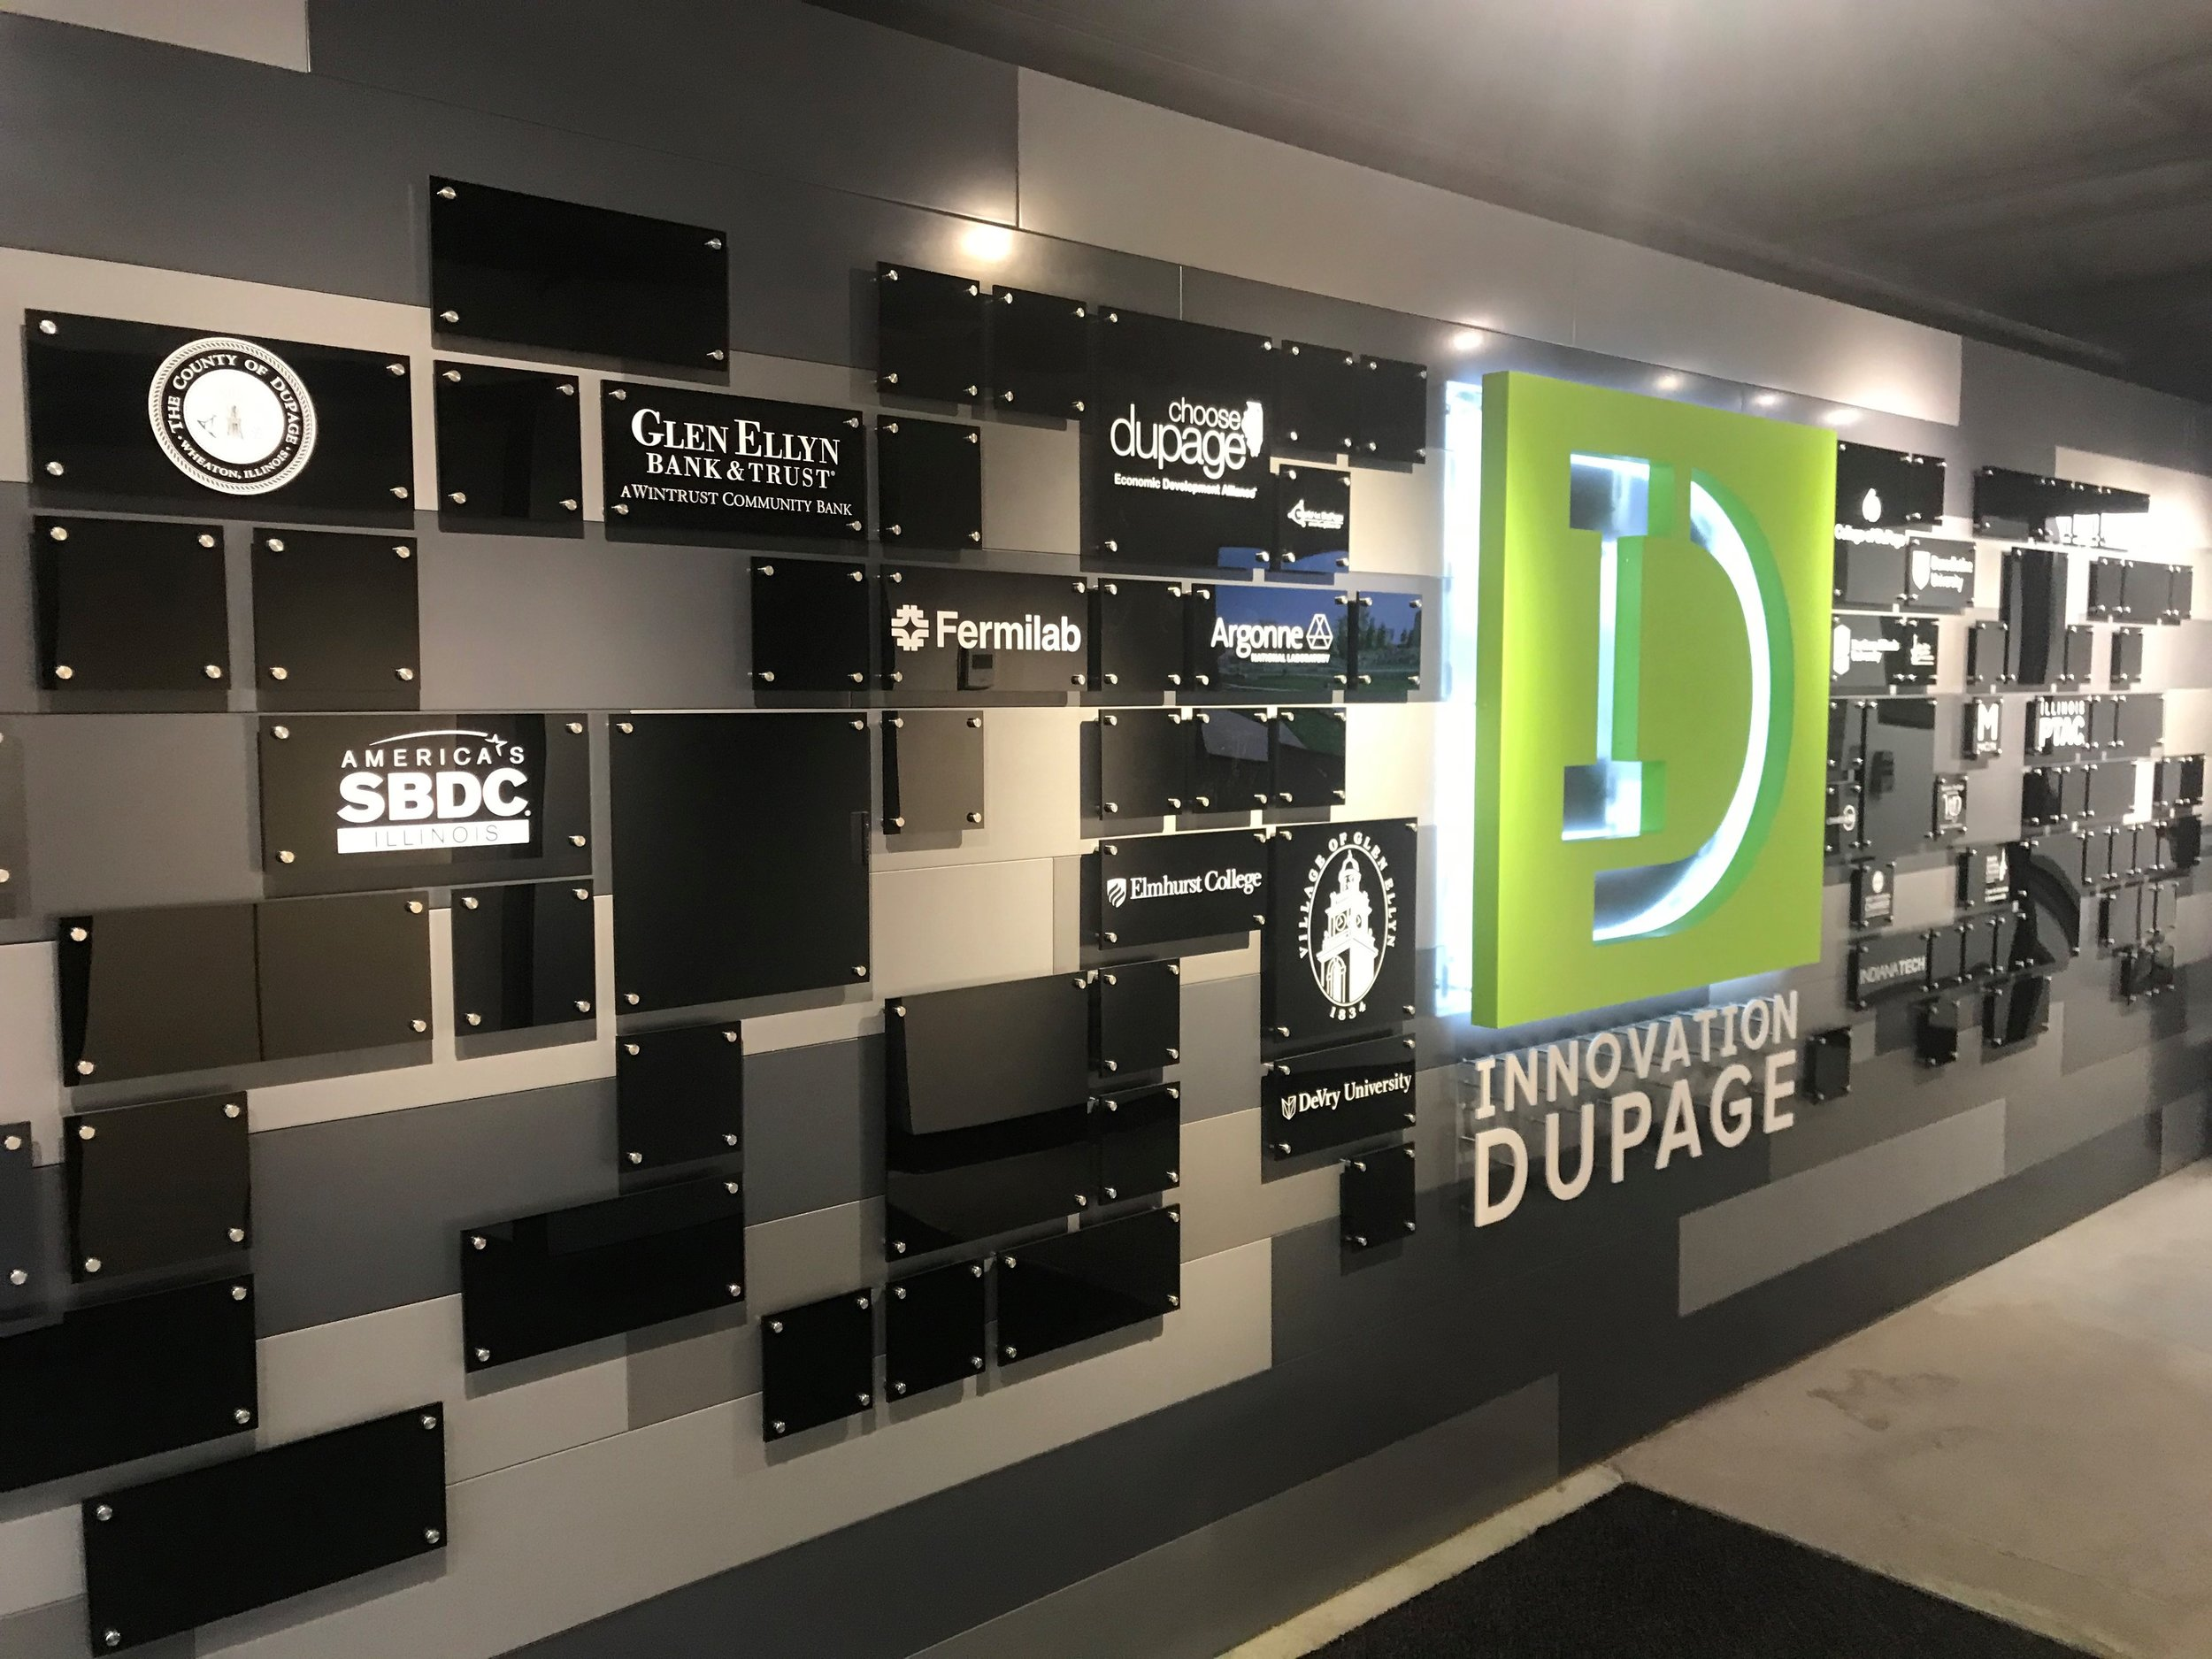 Partnerships with colleges and universities, businesses, and local governments helped to make the Innovation DuPage facility and its programs possible